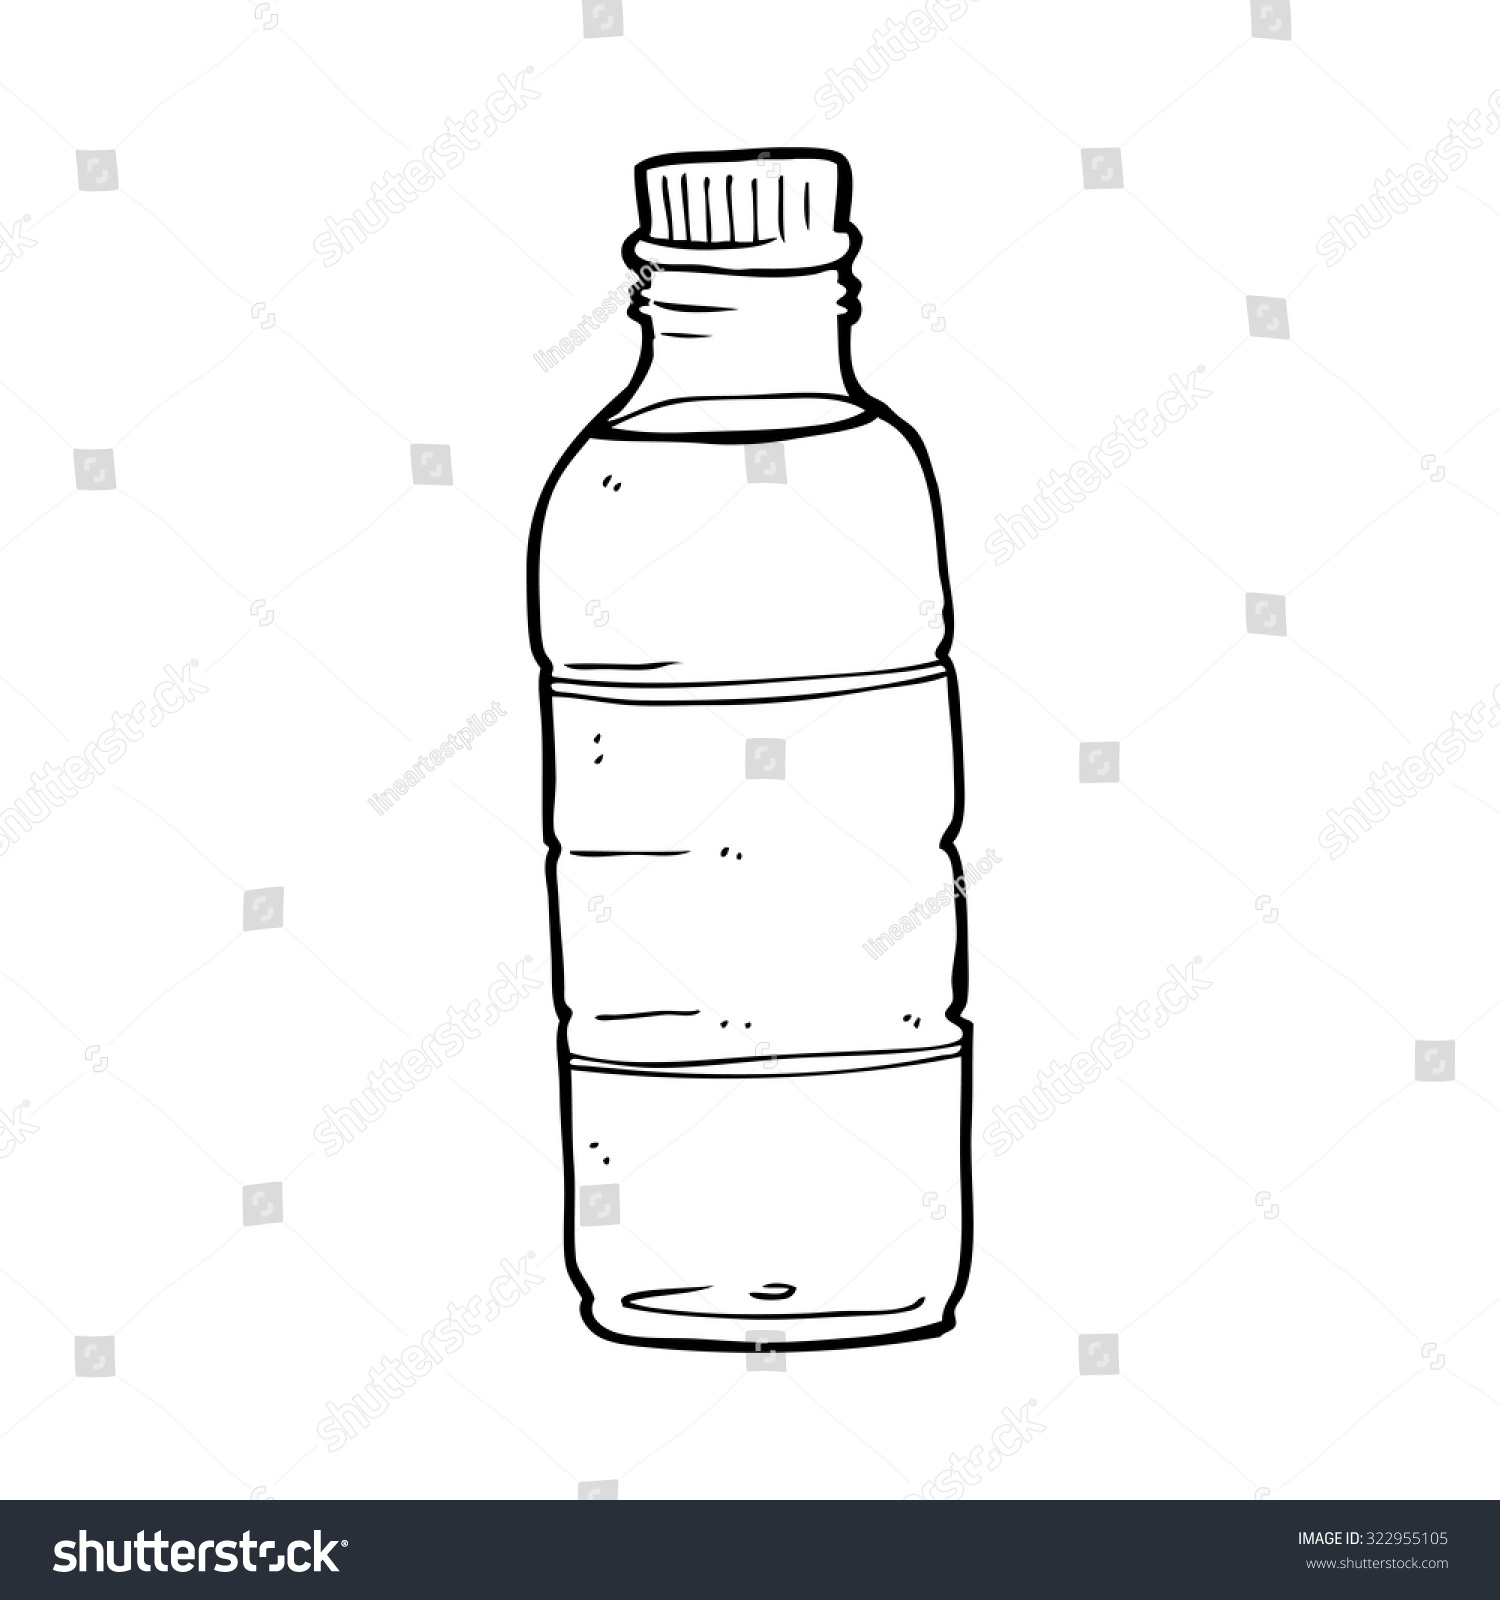 Line Drawing Water : Simple black white line drawing cartoon stock vector